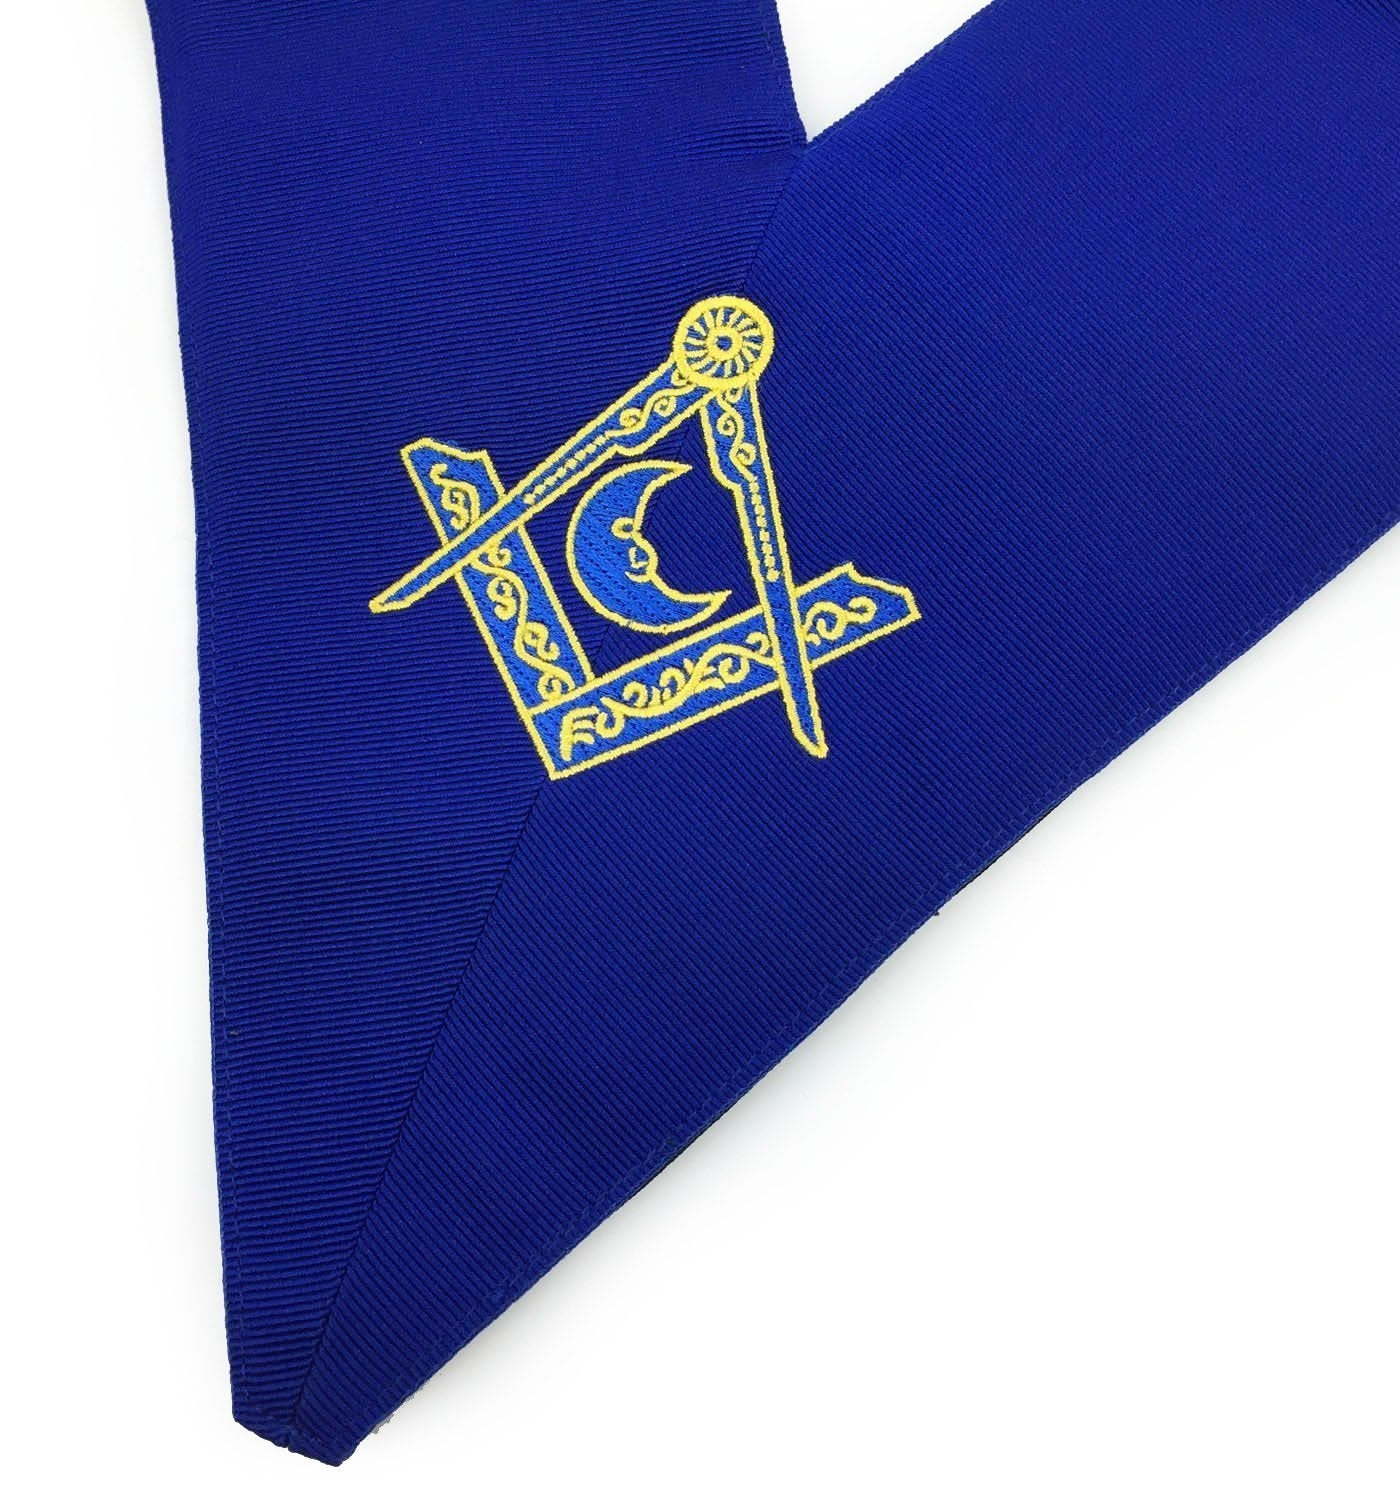 Blue Lodge Officers Collar Set of 12 Machine Embroidery Collars - Bricks Masons